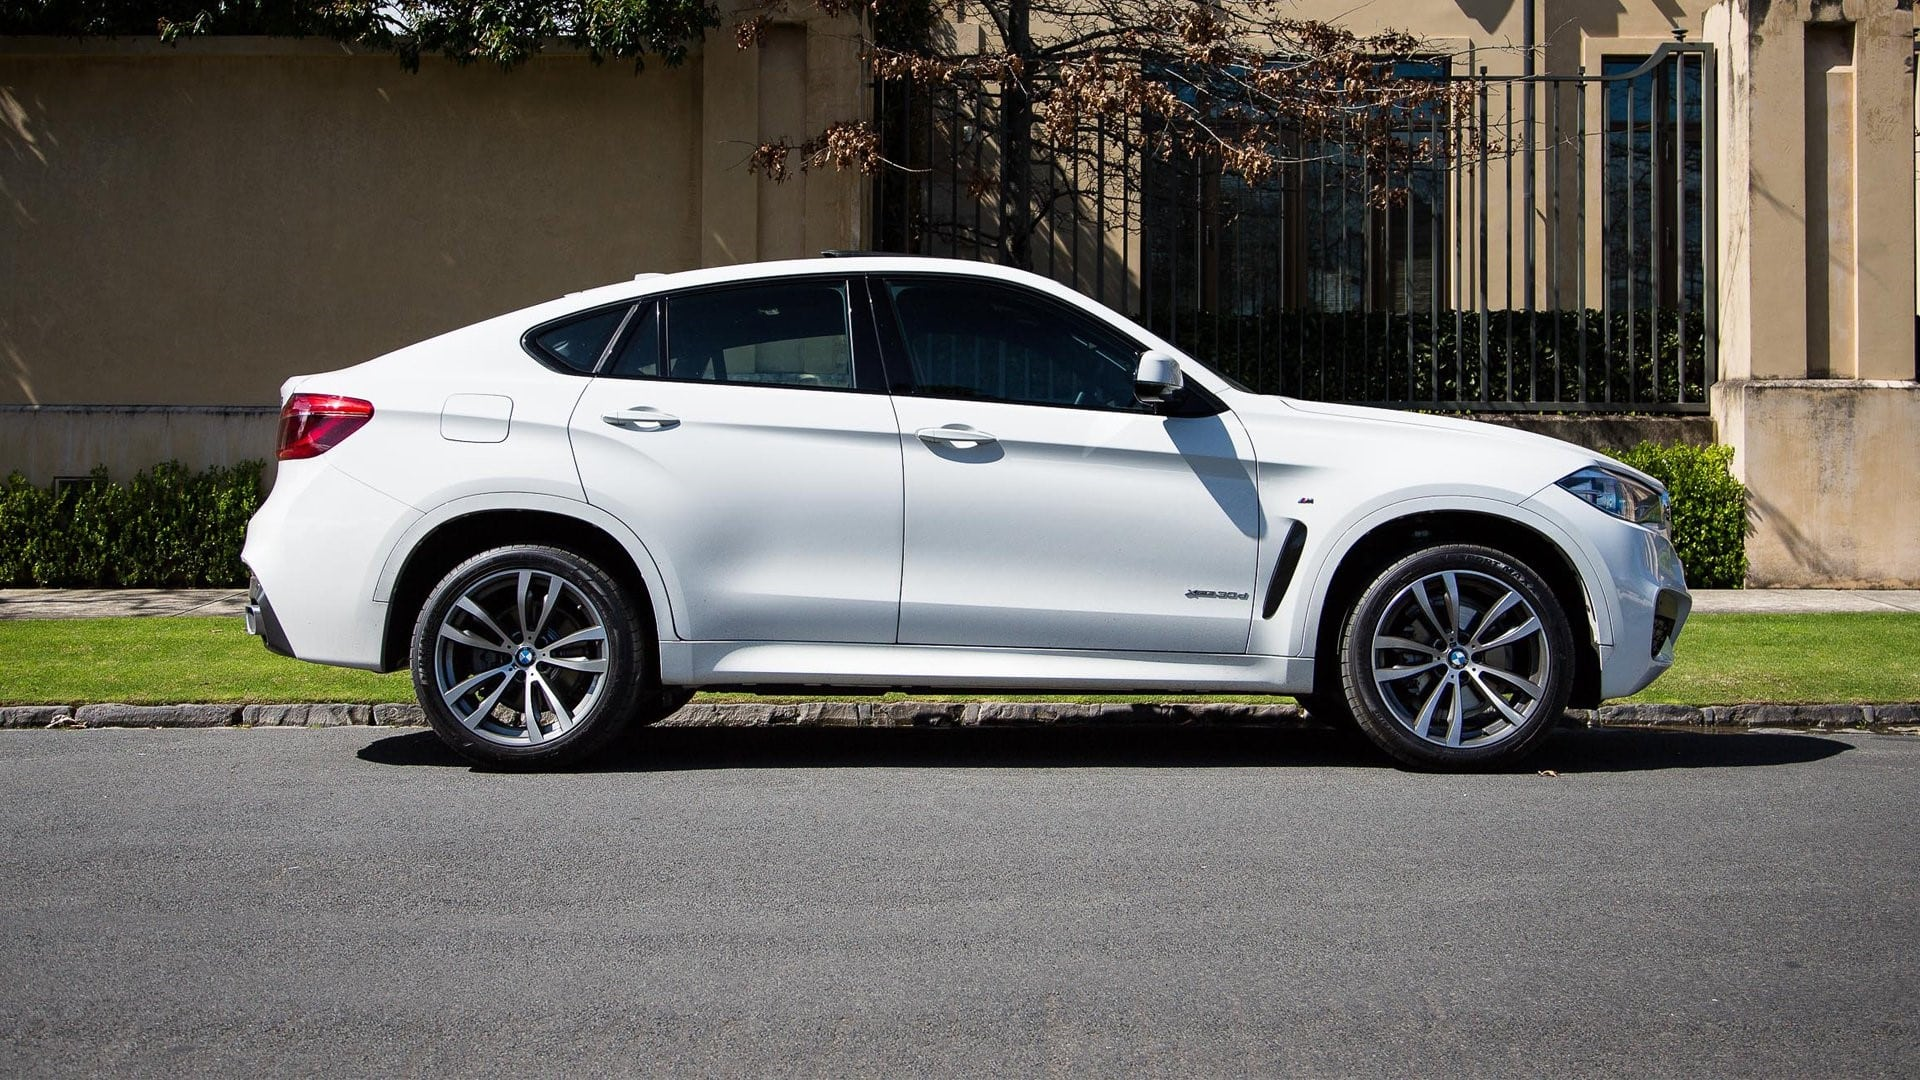 2019 BMW X6 Images